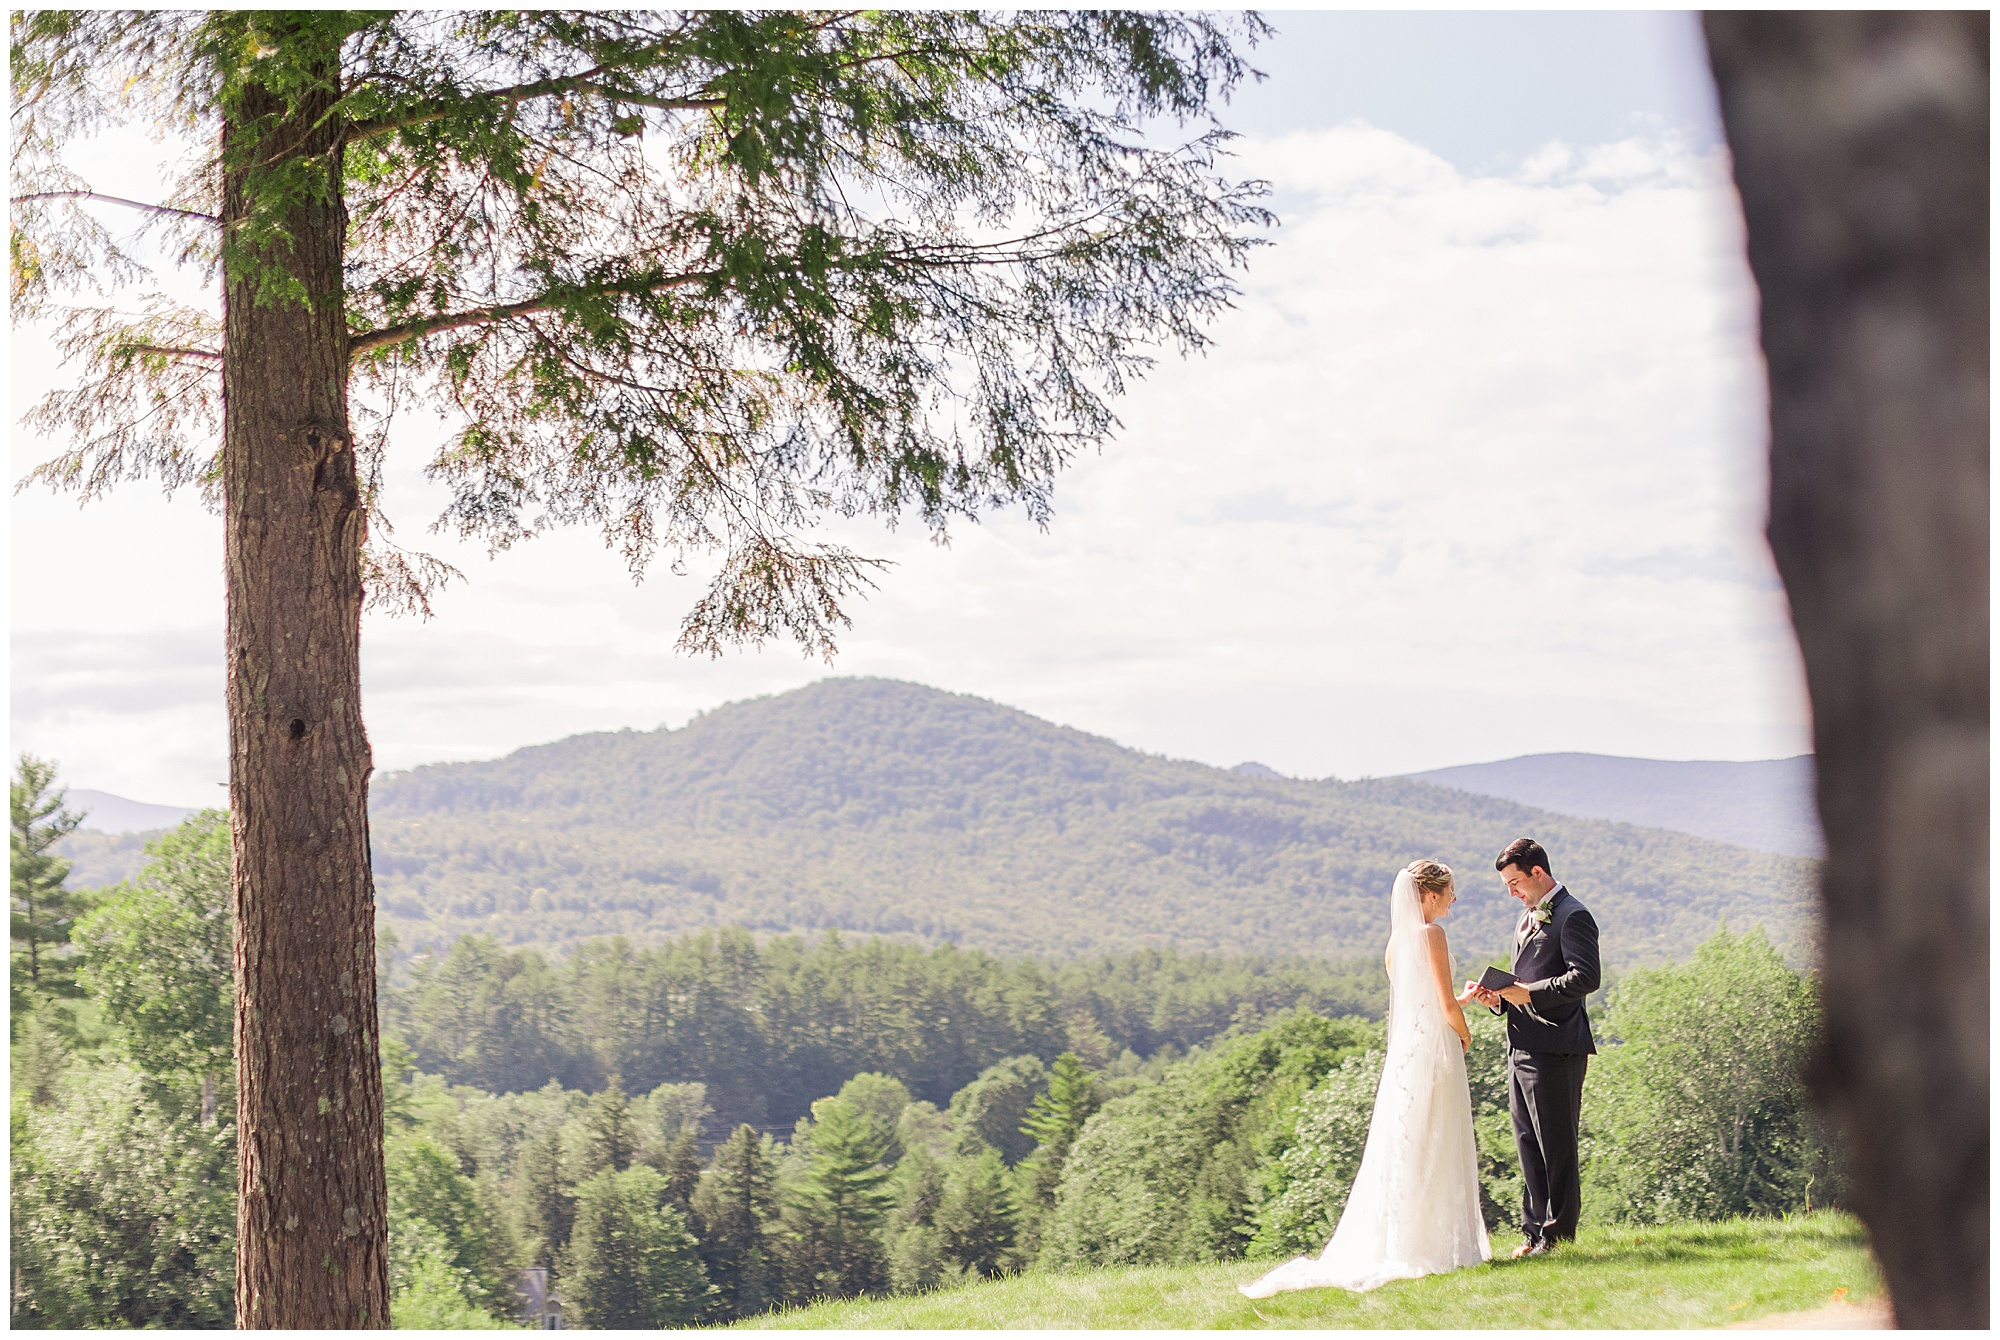 getting married destination wedding New Hampshire The Ewings